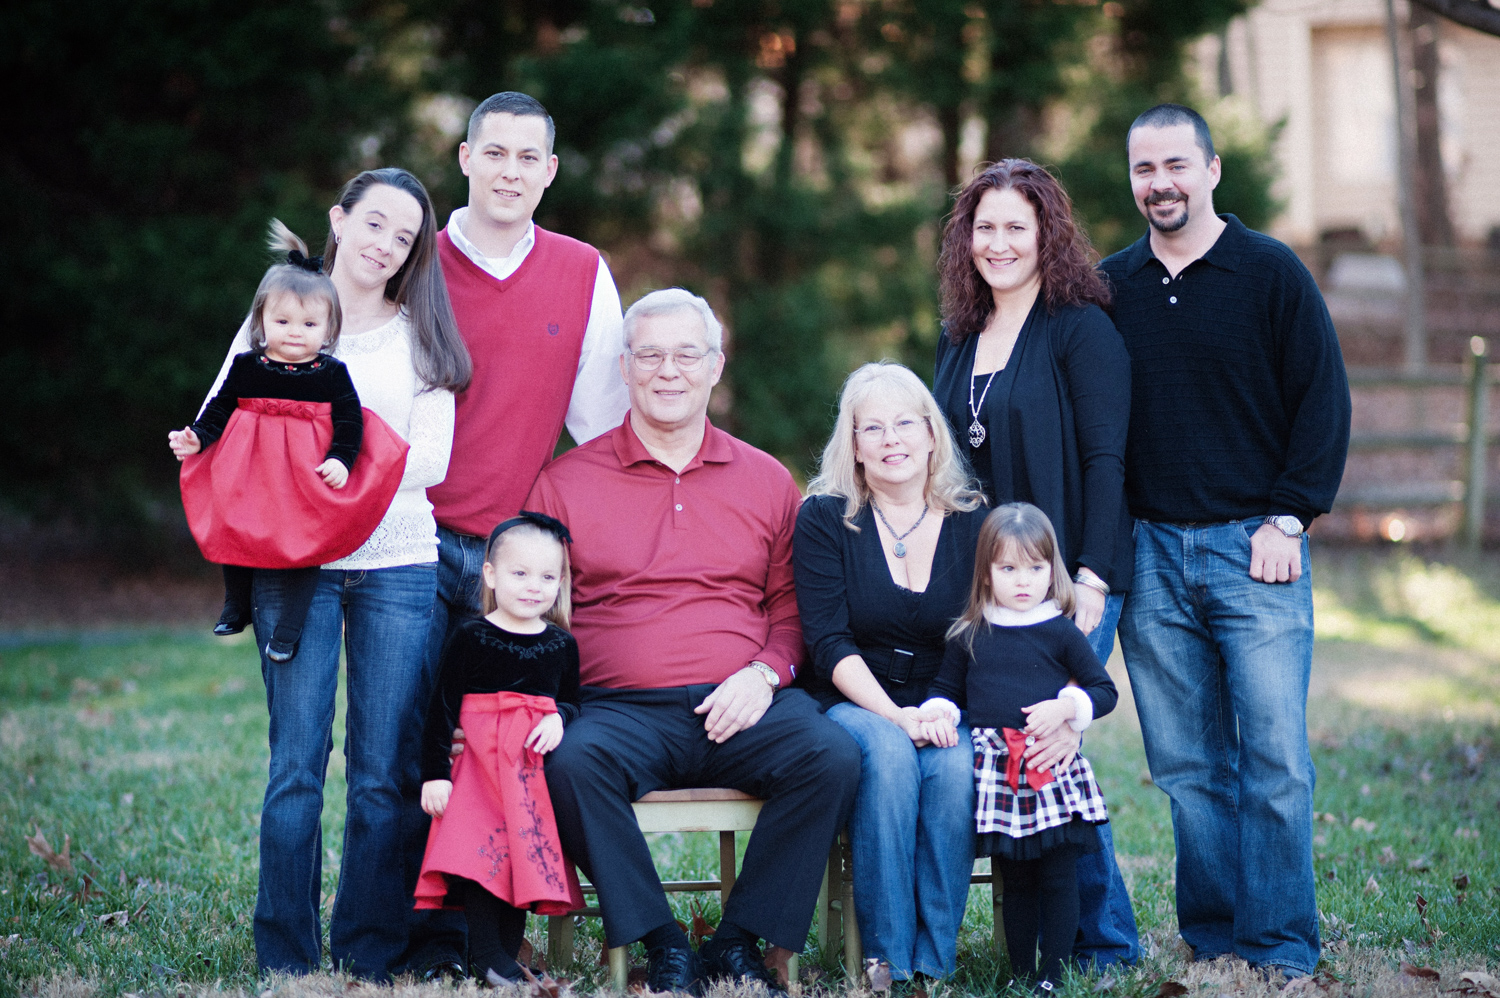 pinkerman-family-011.jpg